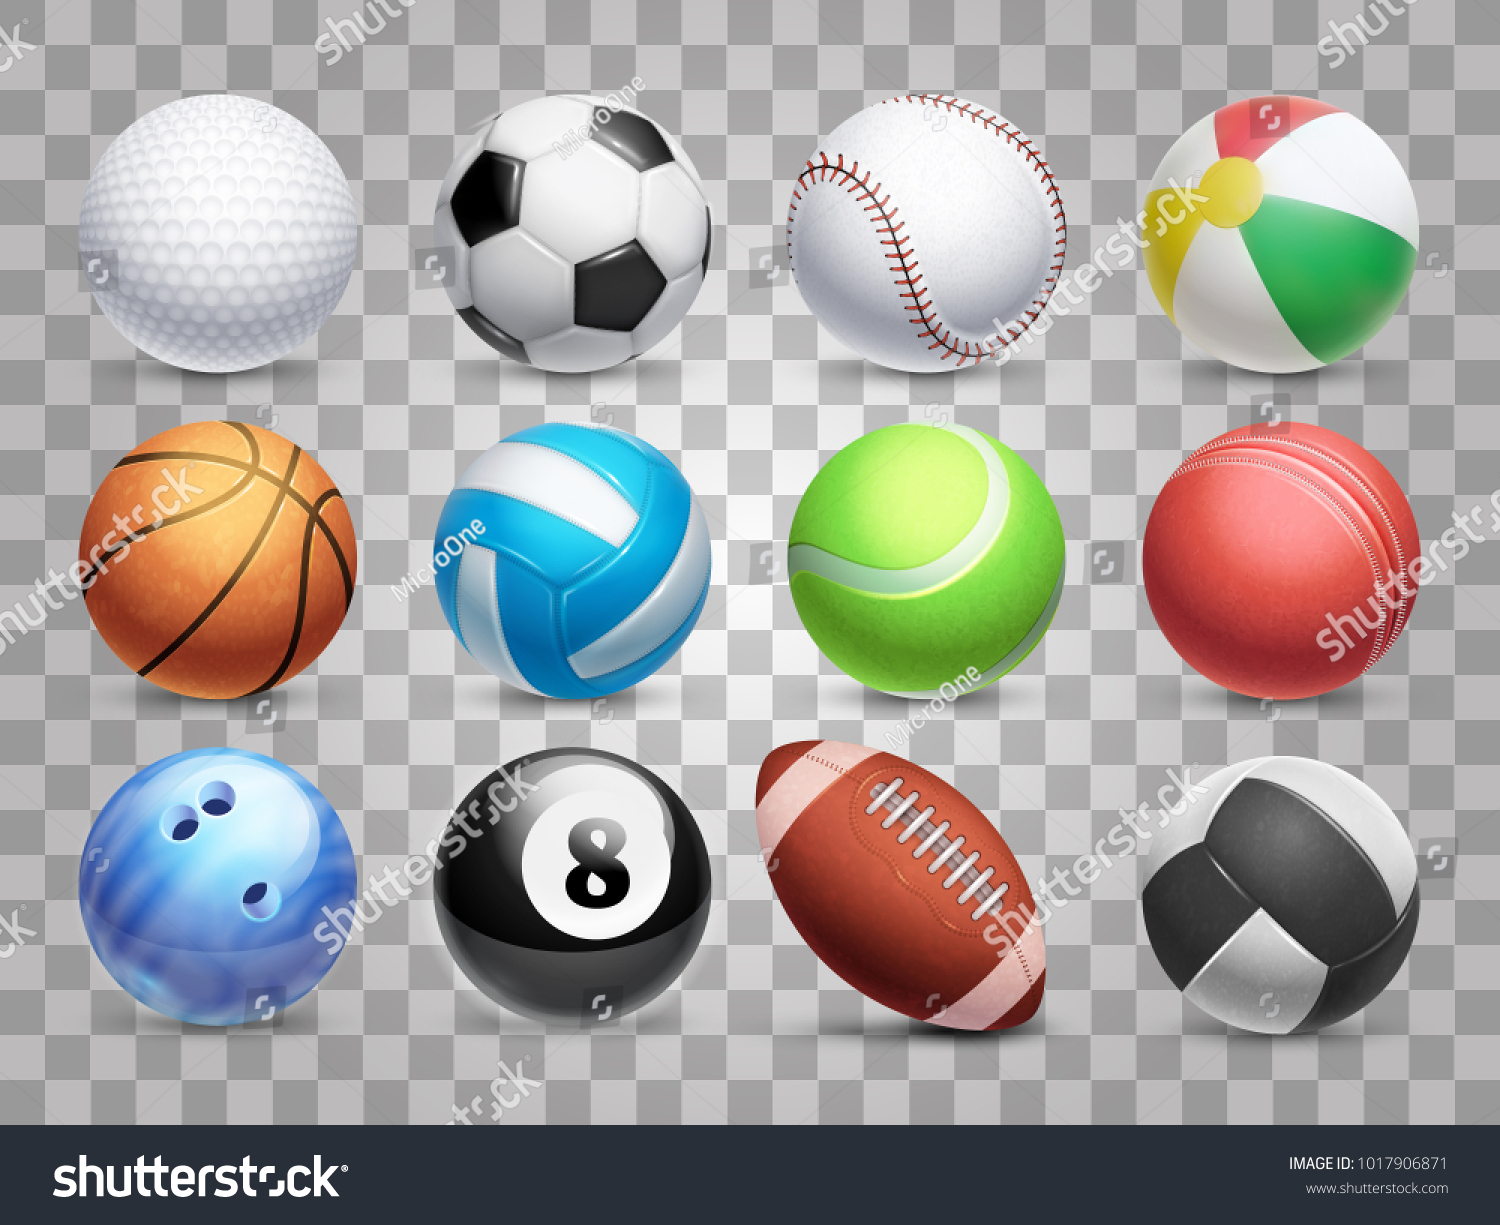 Realistic sports balls vector big set isolated on transparent background. Illustration of soccer and baseball, football game and tennis